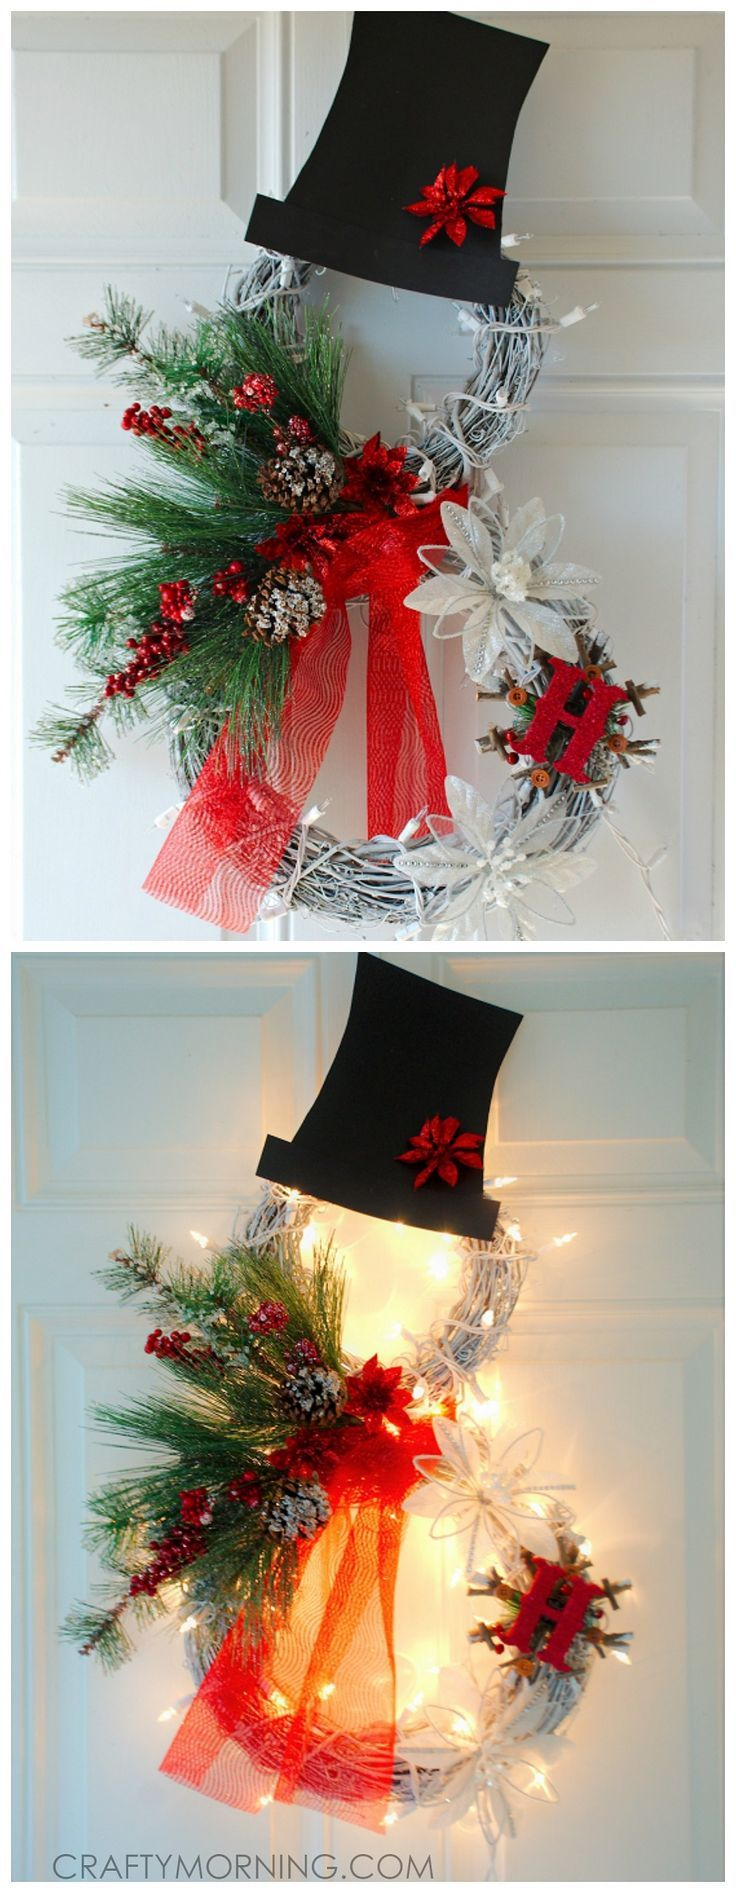 Beautiful lighted grapevine snowman wreath to make